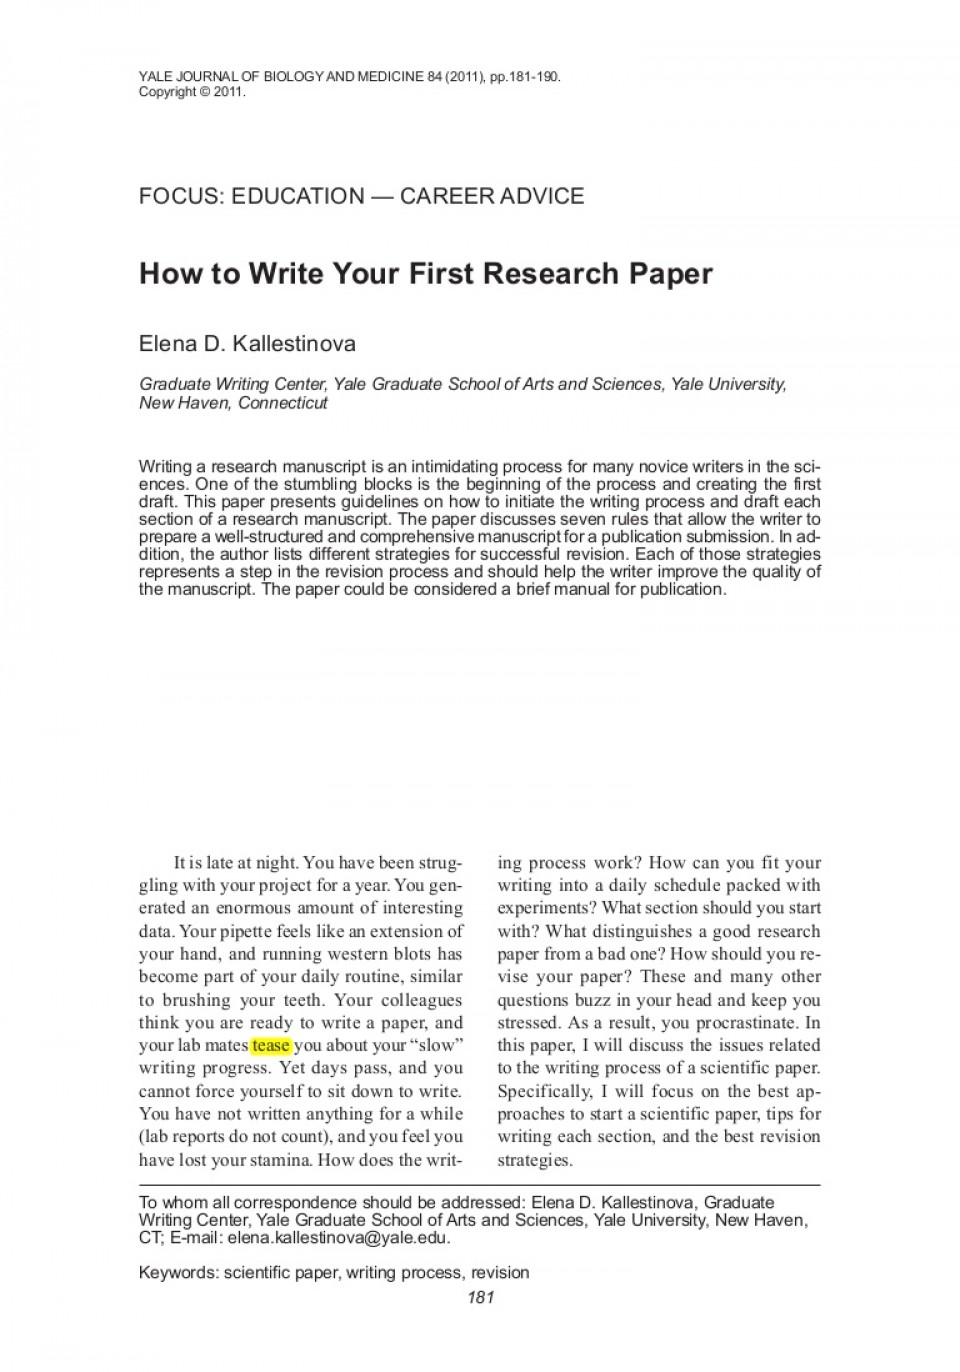 013 How To Write Research Papers Paper Howtowriteyourfirstresearchpaper Lva1 App6891 Thumbnail Best A History Introduction For International Conference In Computer Science Ppt 960